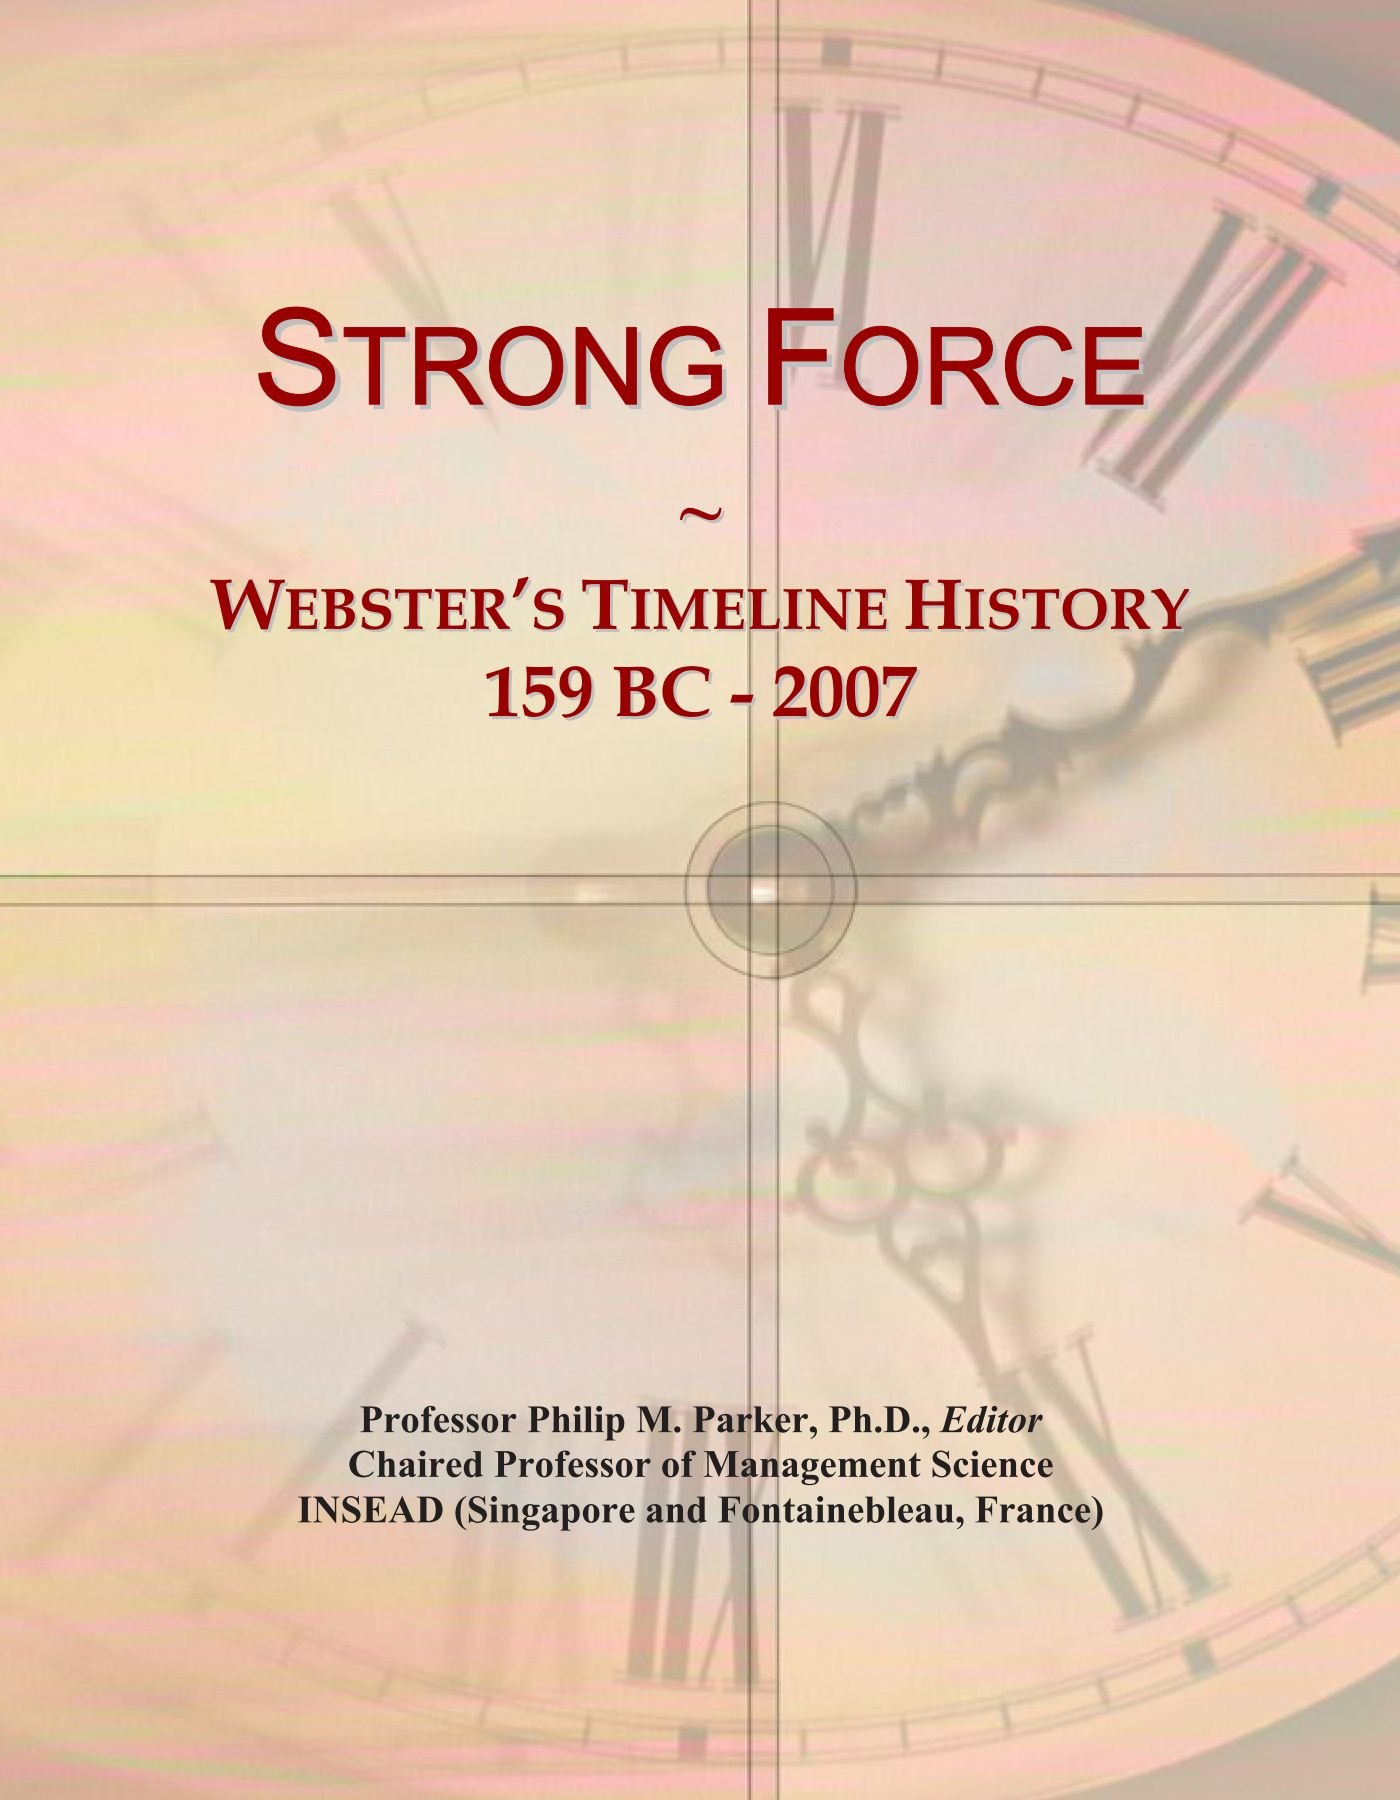 Strong Force: Webster's Timeline History, 159 BC - 2007 ebook